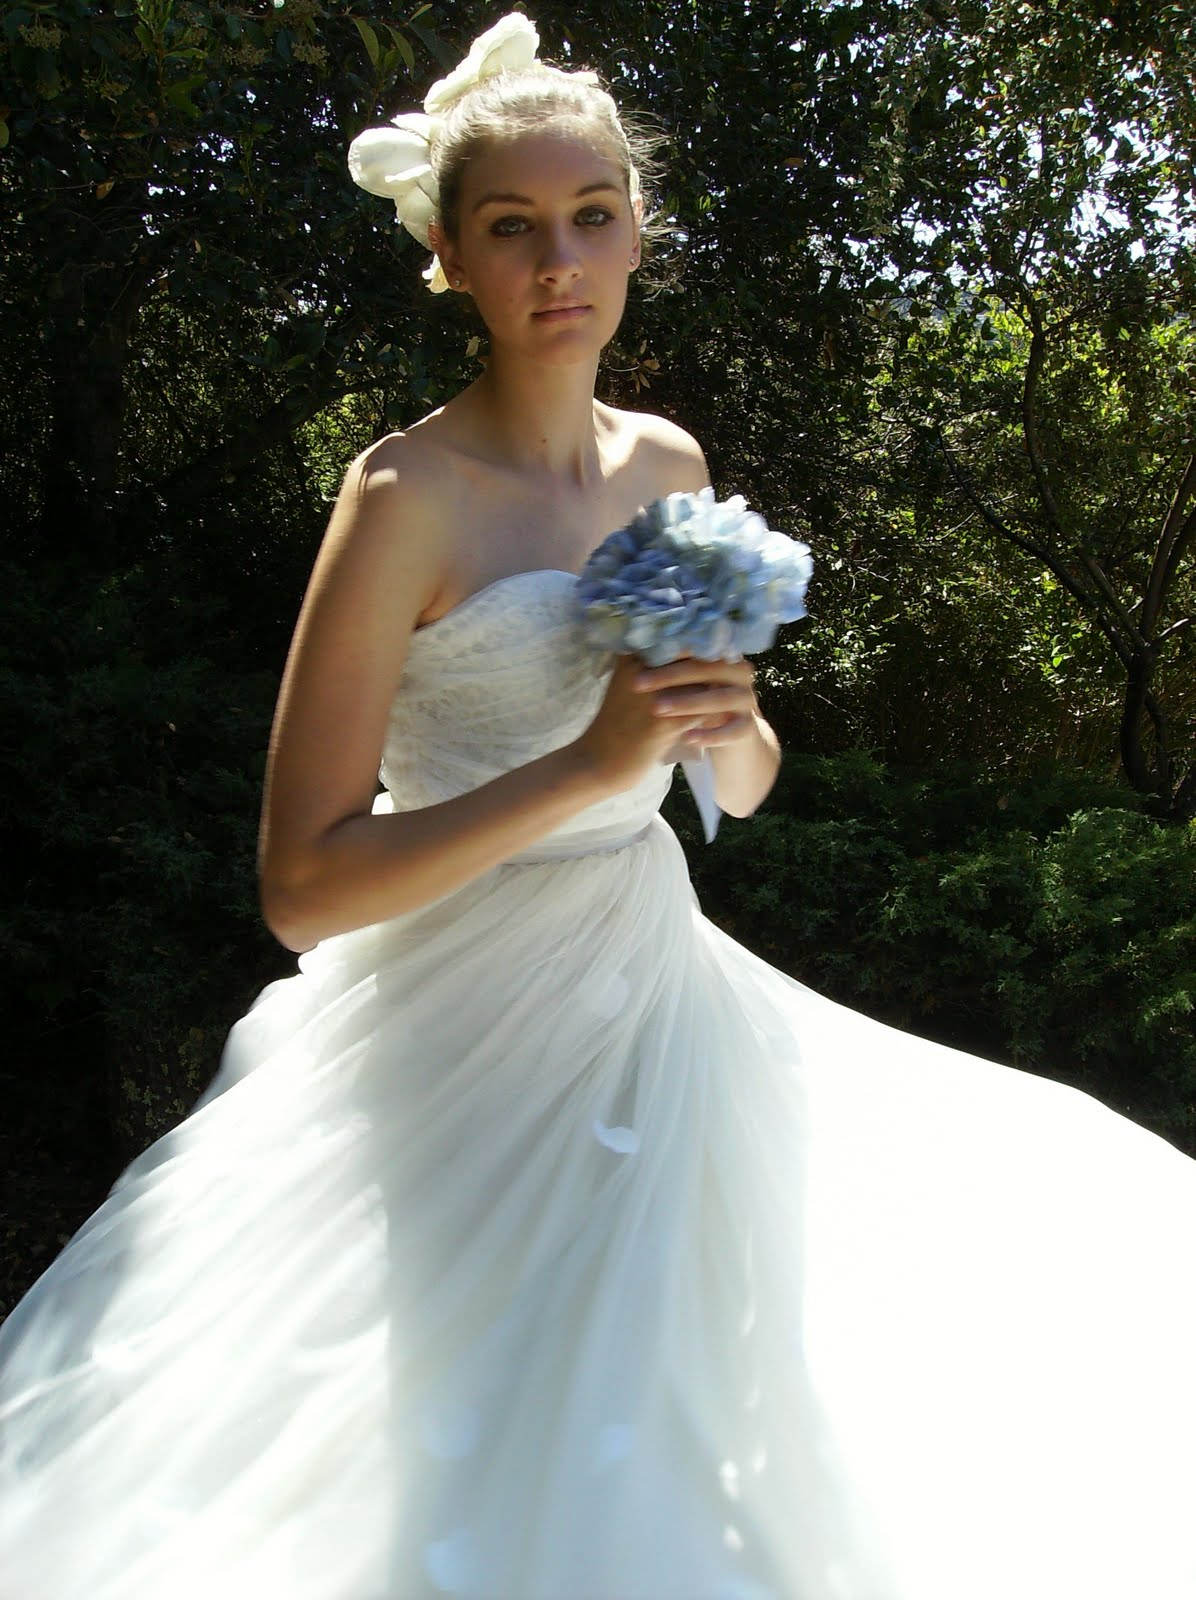 BRIDE CHIC: SALUTE TO CHRISTIAN DIOR